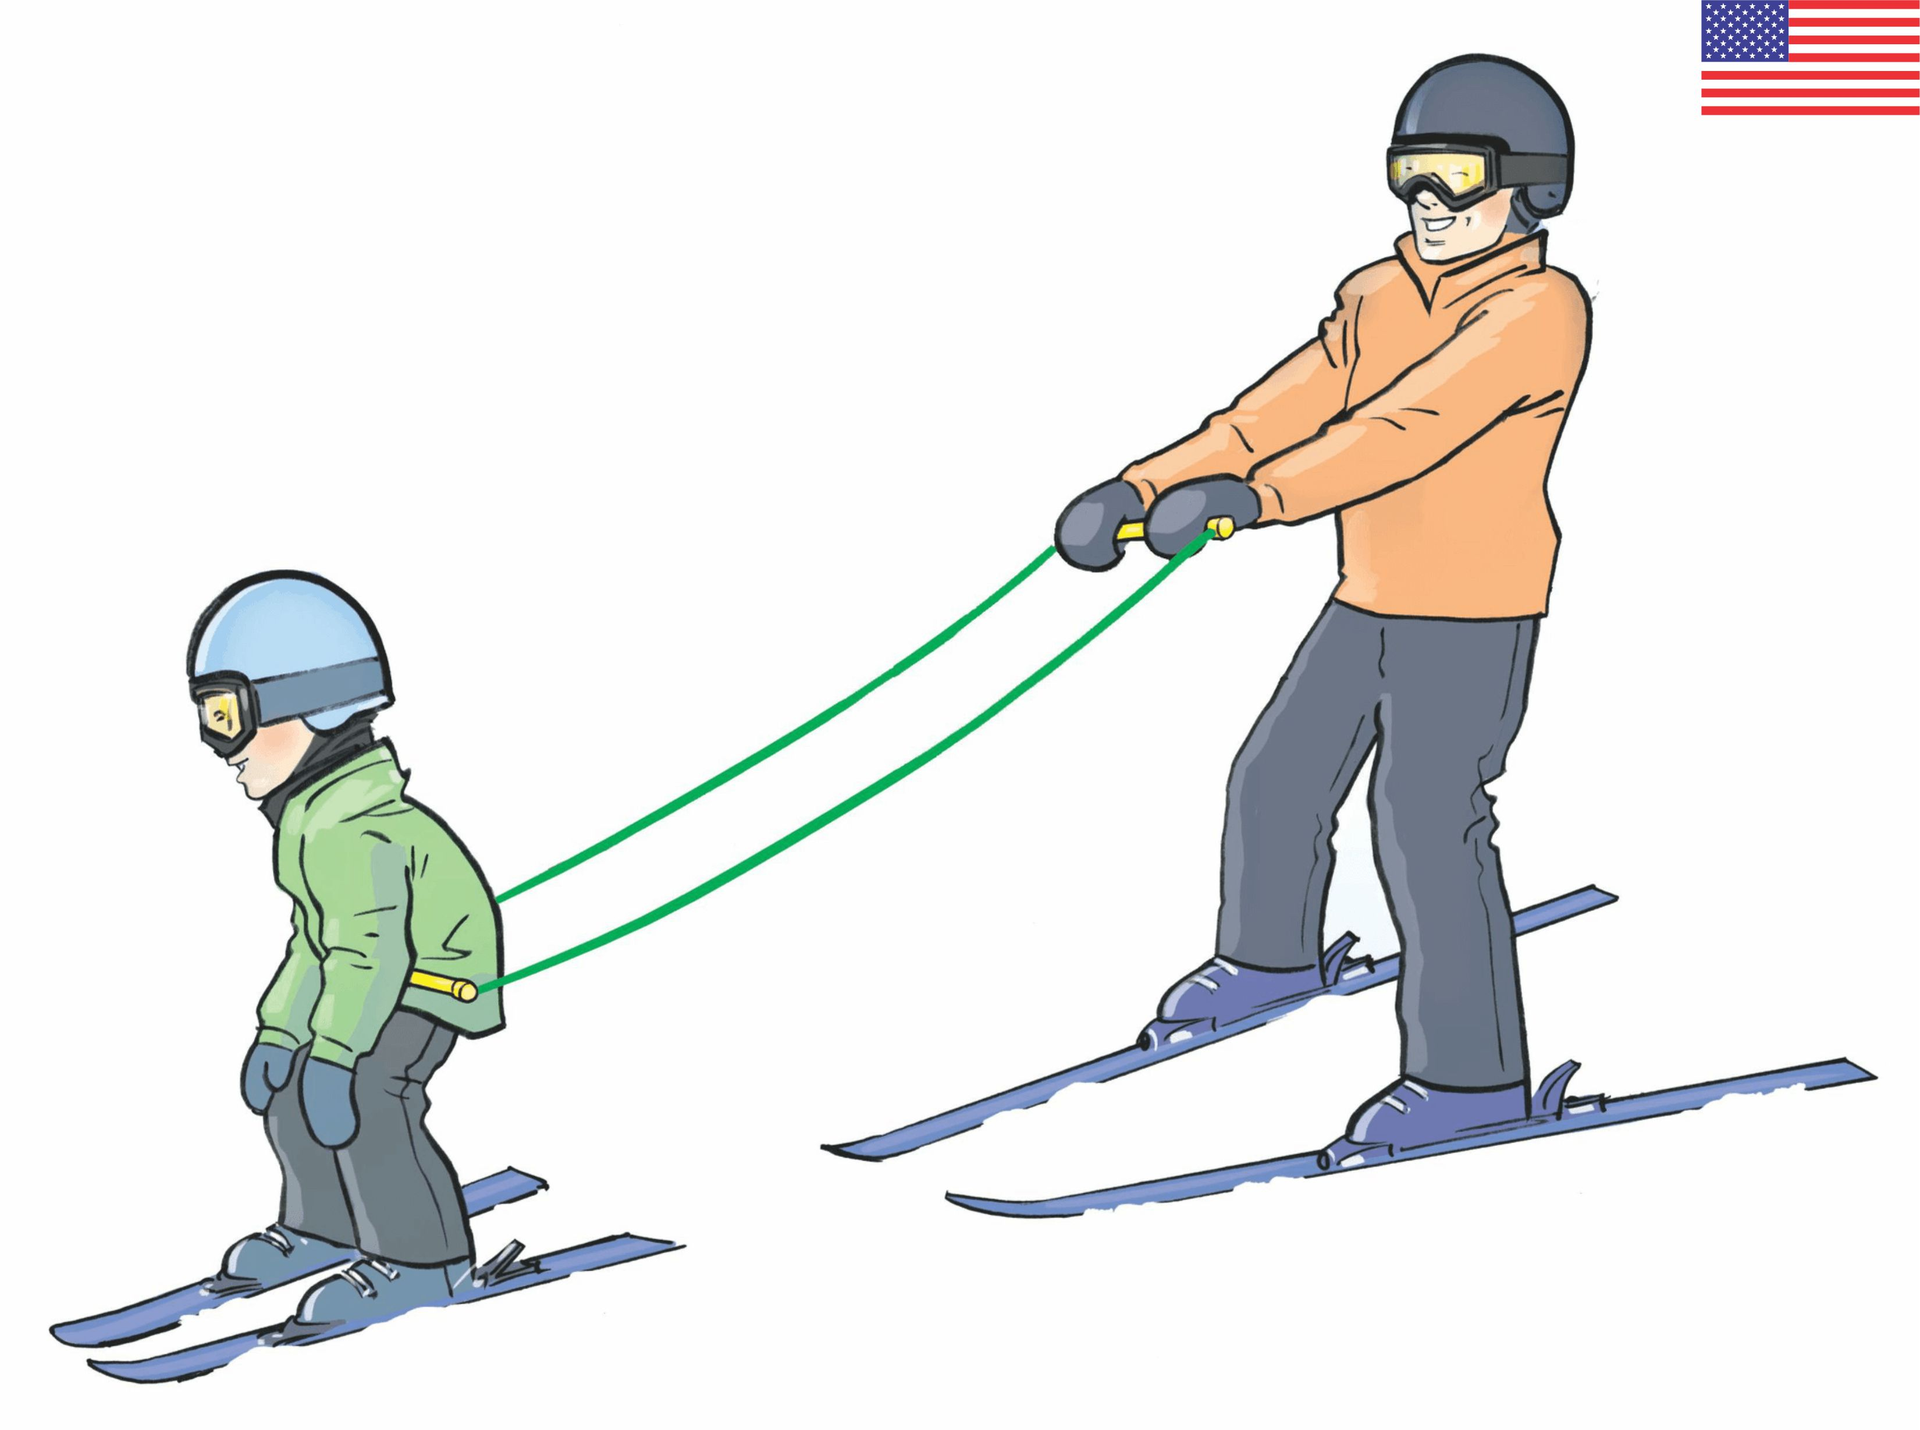 The easiest way kids learn to ski.